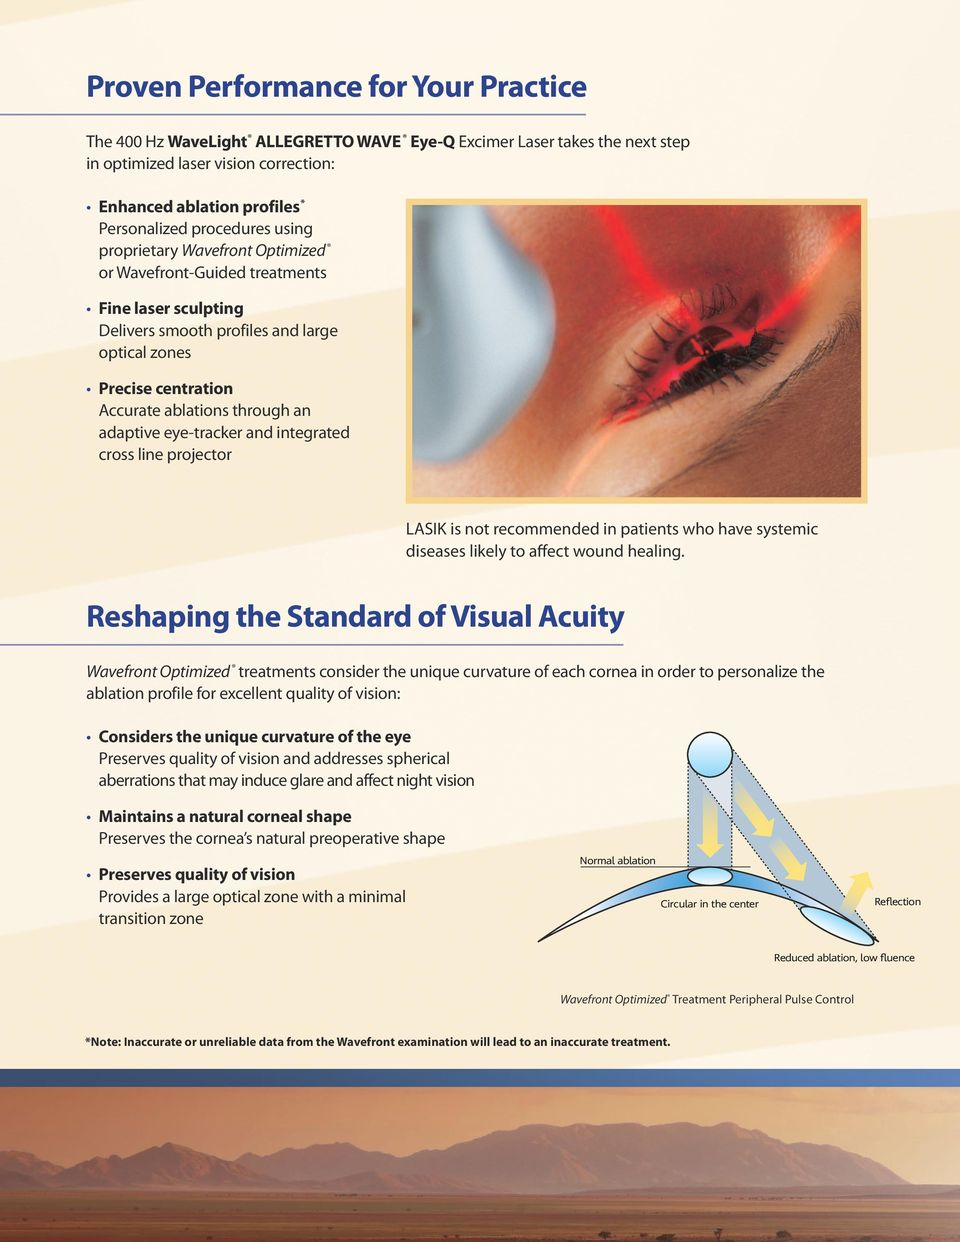 adaptive eye-tracker and integrated cross line projector LASIK is not recommended in patients who have systemic diseases likely to affect wound healing.